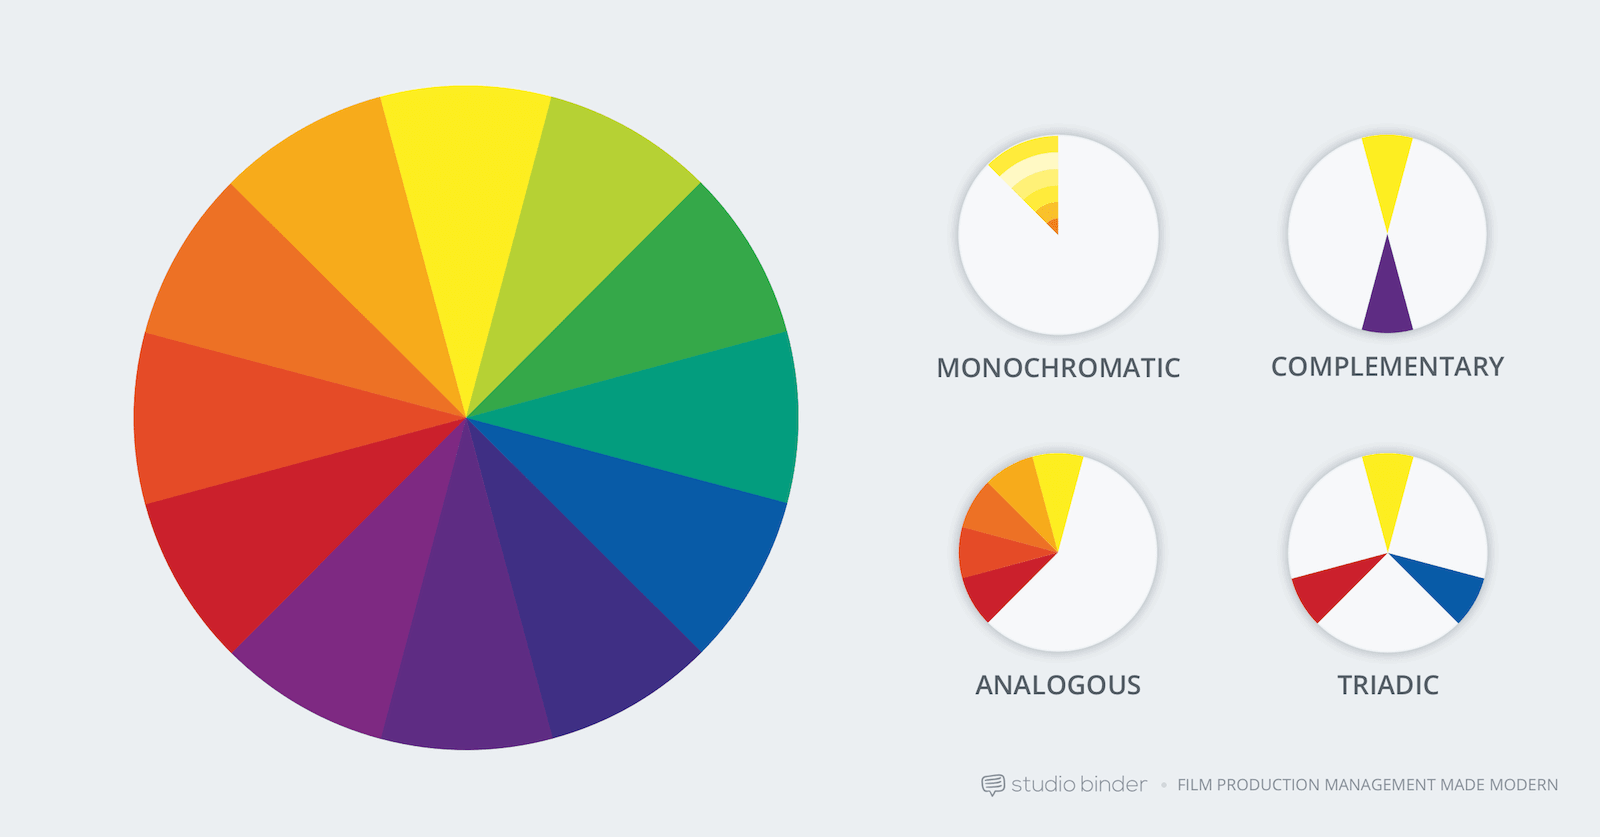 Monochromatic Color Scheme Definition how to use color in film: 50+ examples of movie color palettes